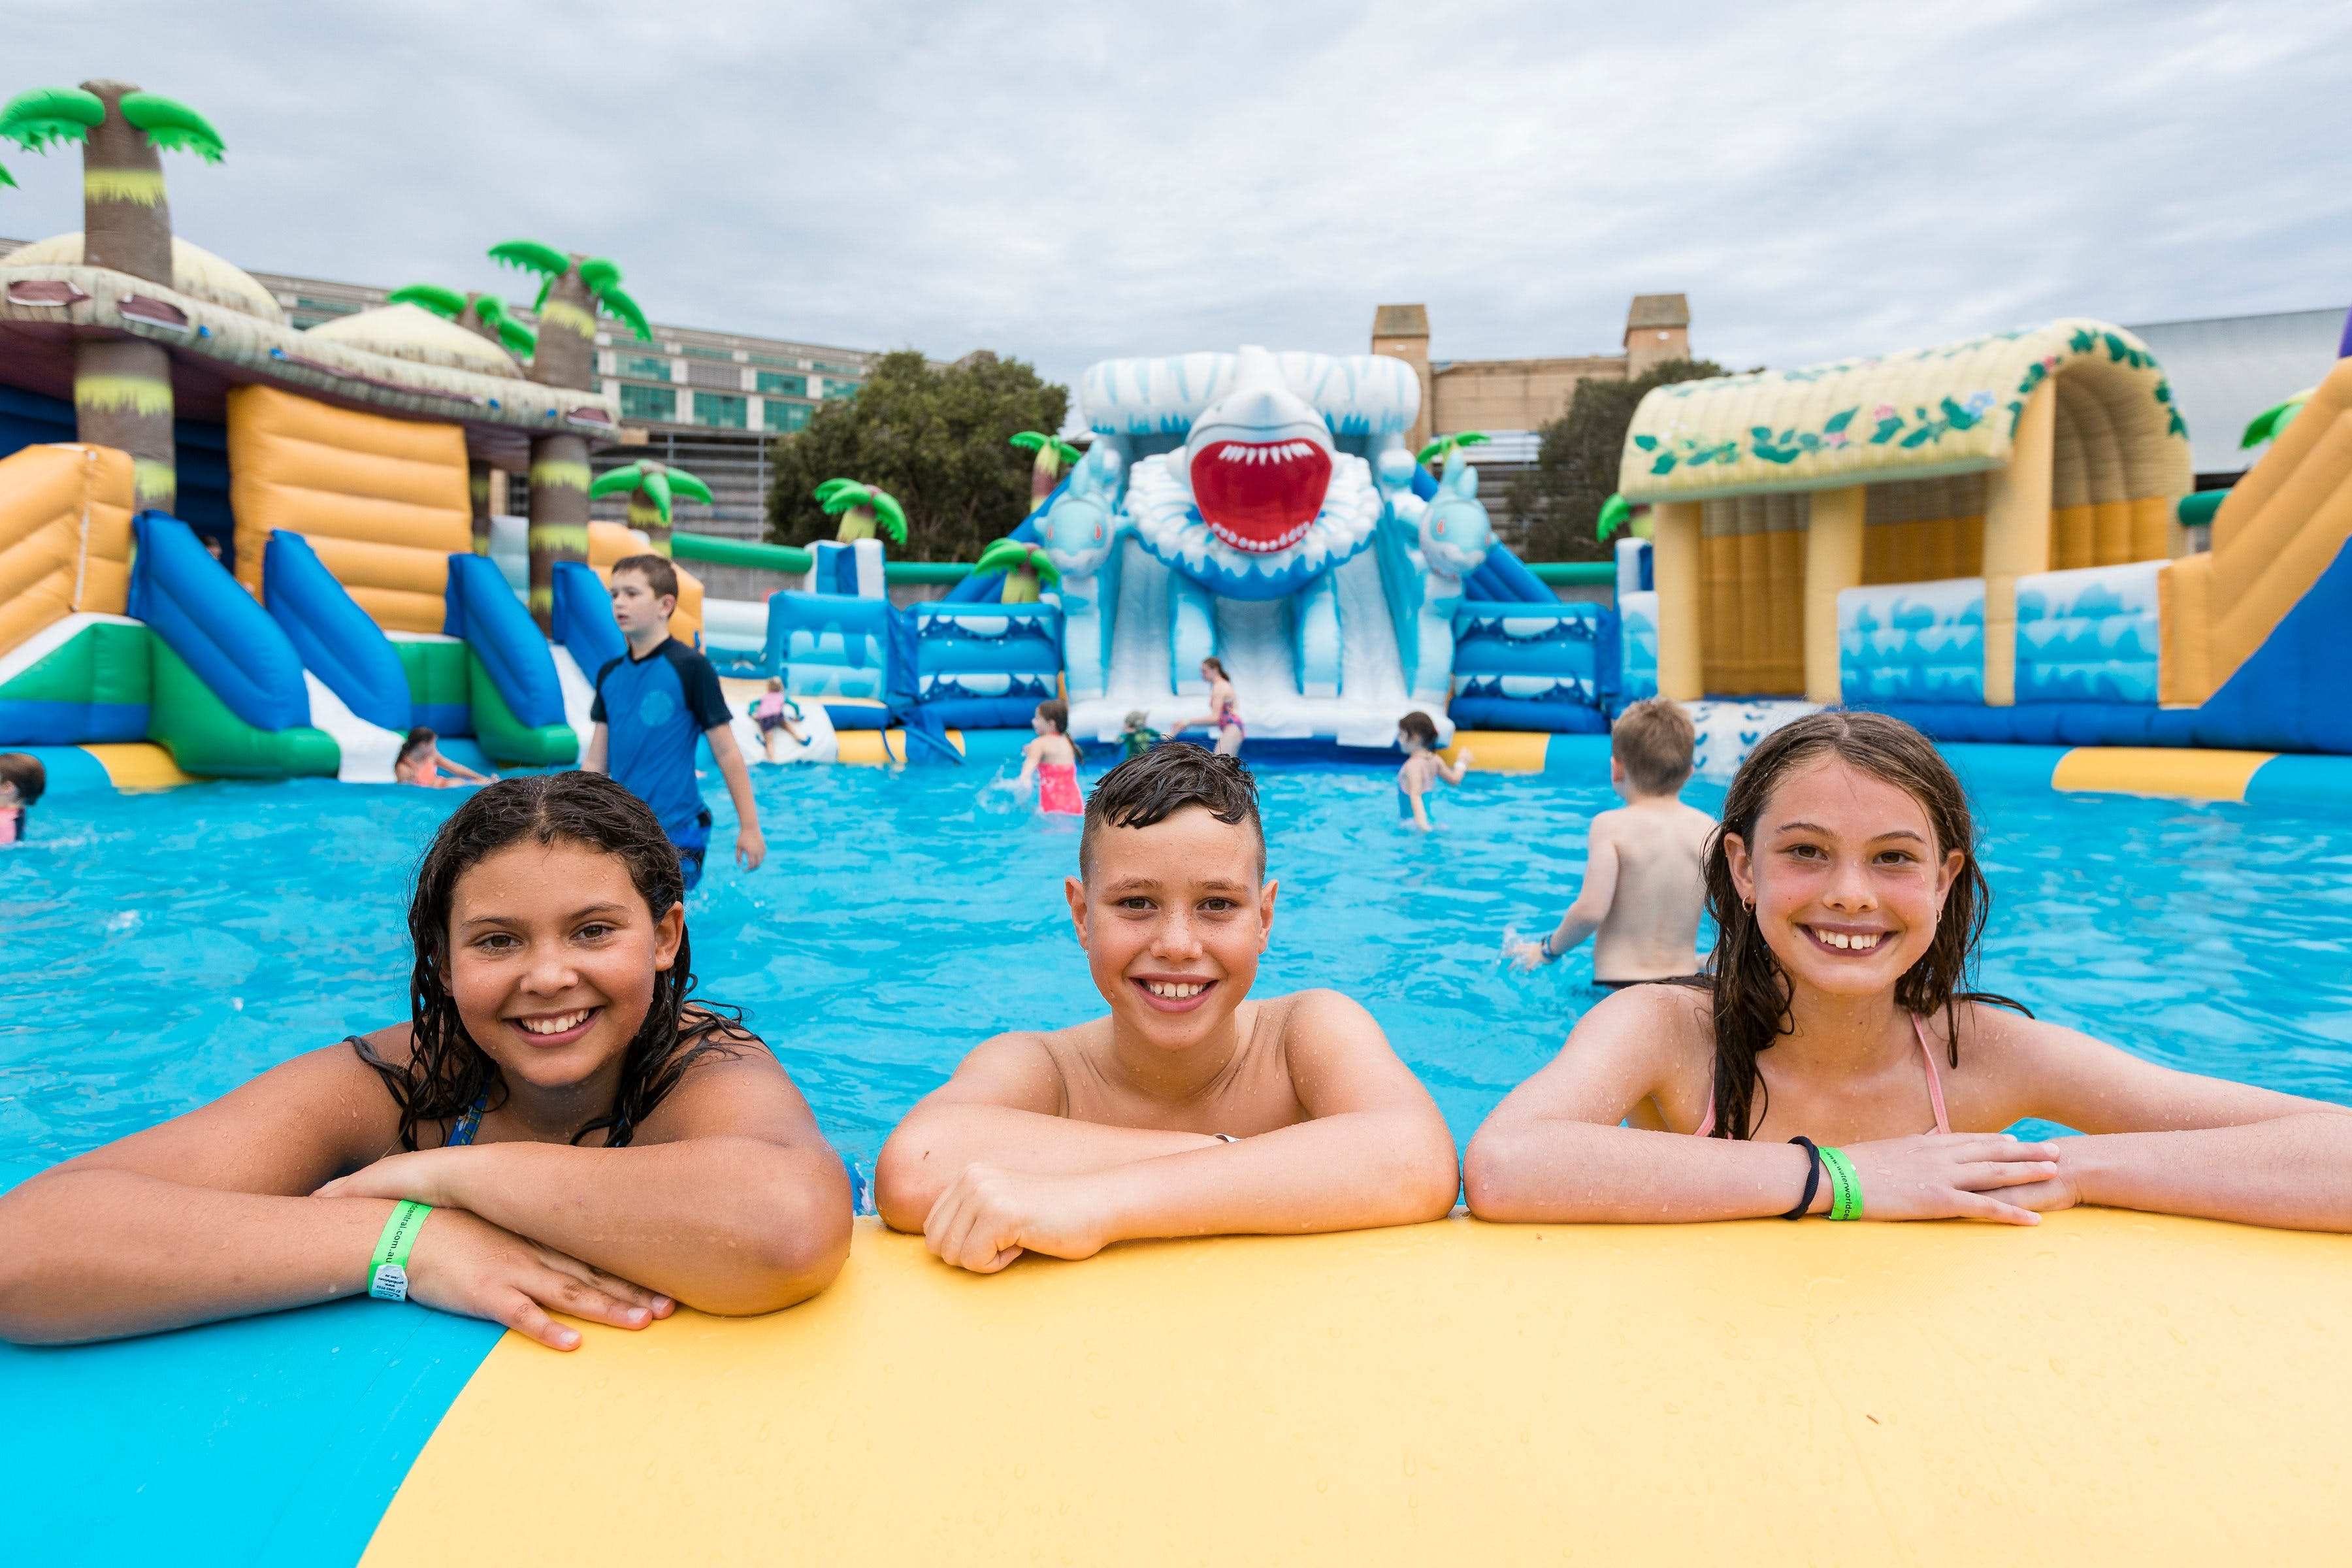 Waterworld Central - Mobile Inflatable Waterpark - Australia Accommodation